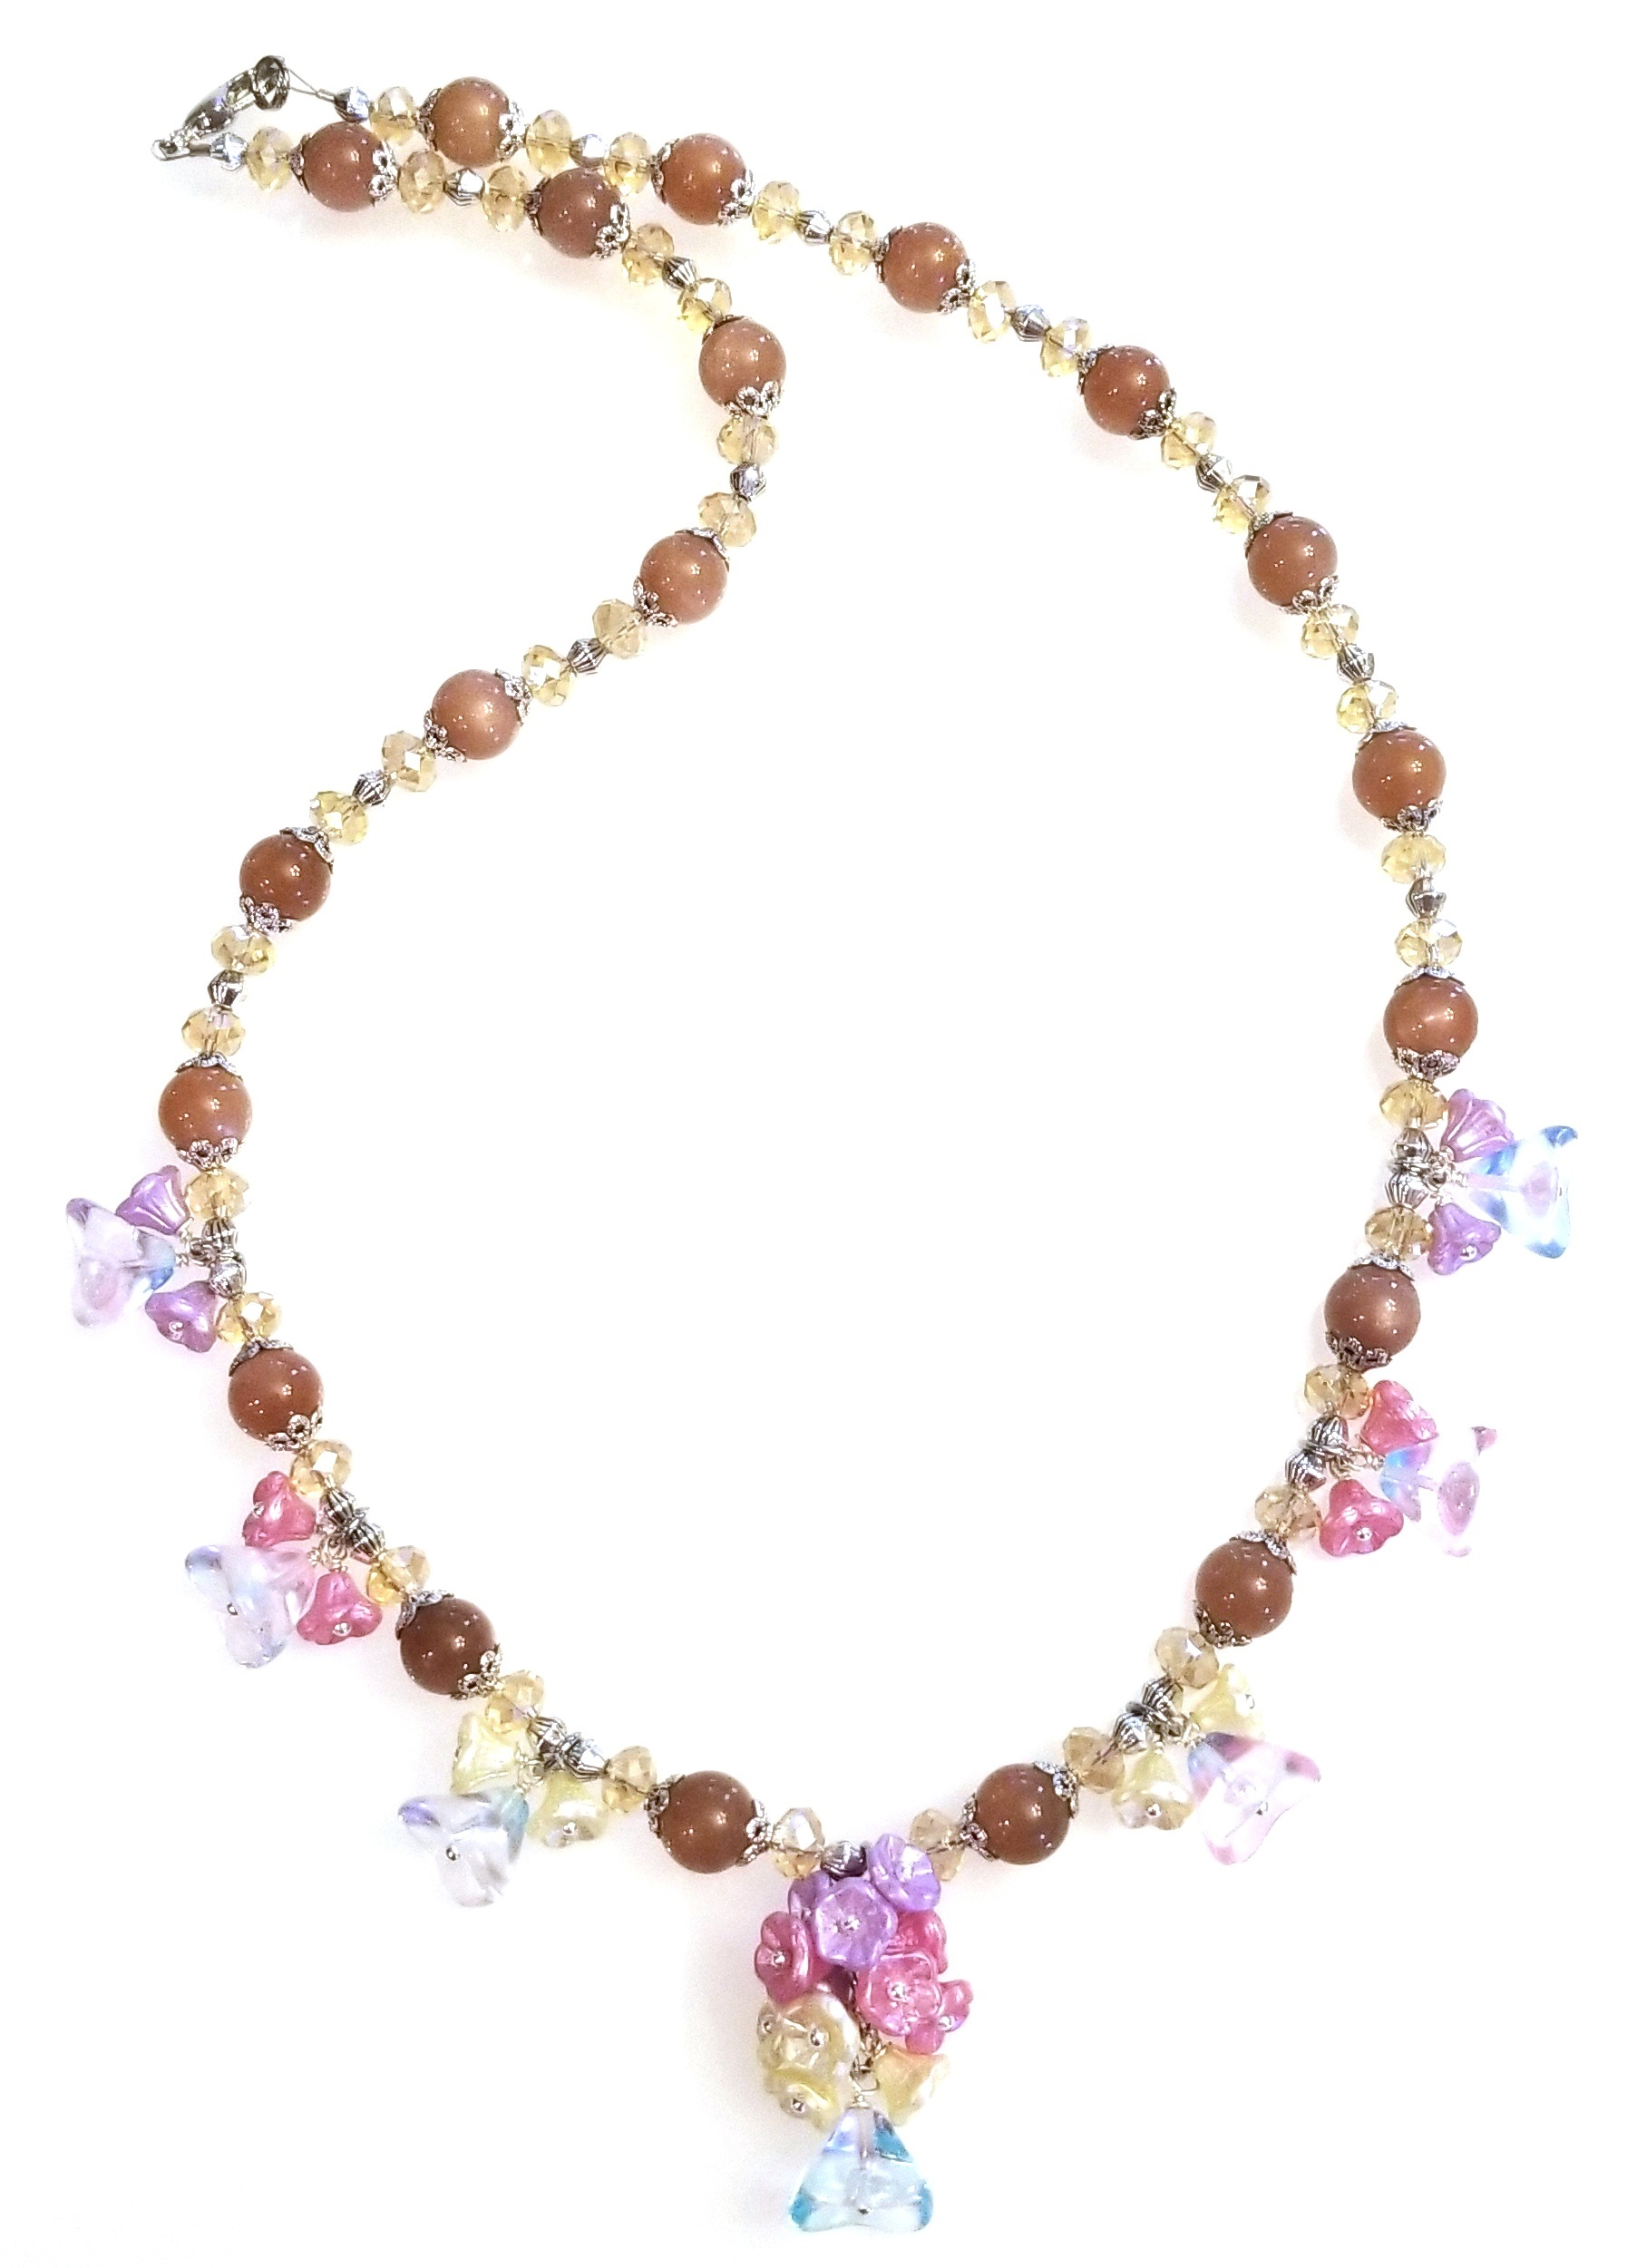 Fairy Blossoms Necklace Free Beaded Jewelry Making Pattern